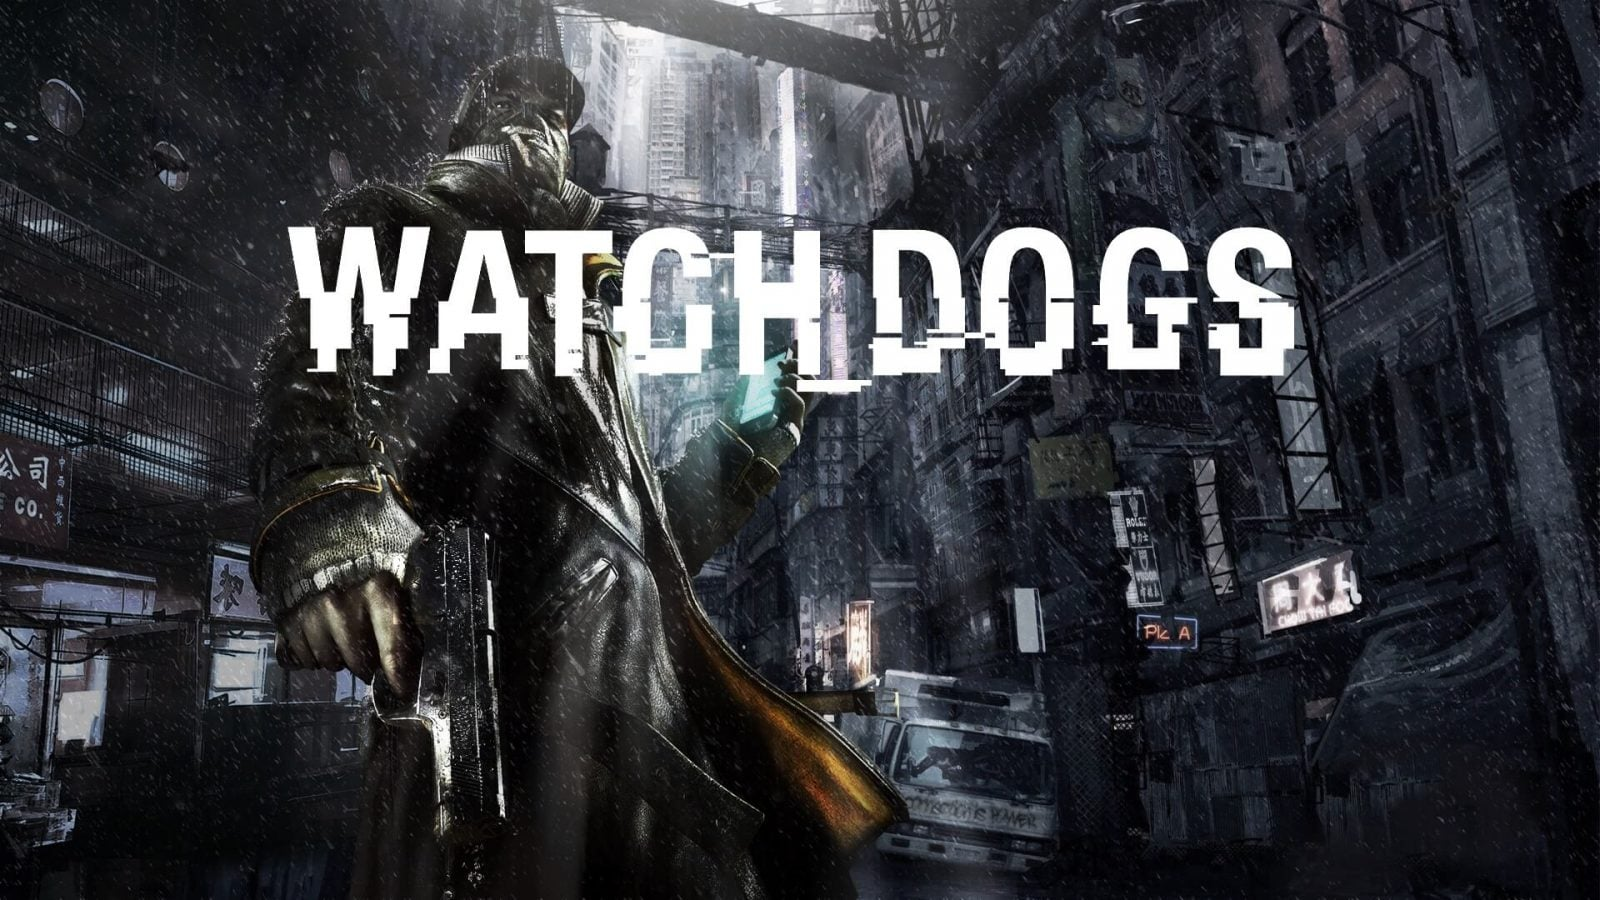 WATCH DOGS – RELOADED (2014) FULL GAME PC TORRENT